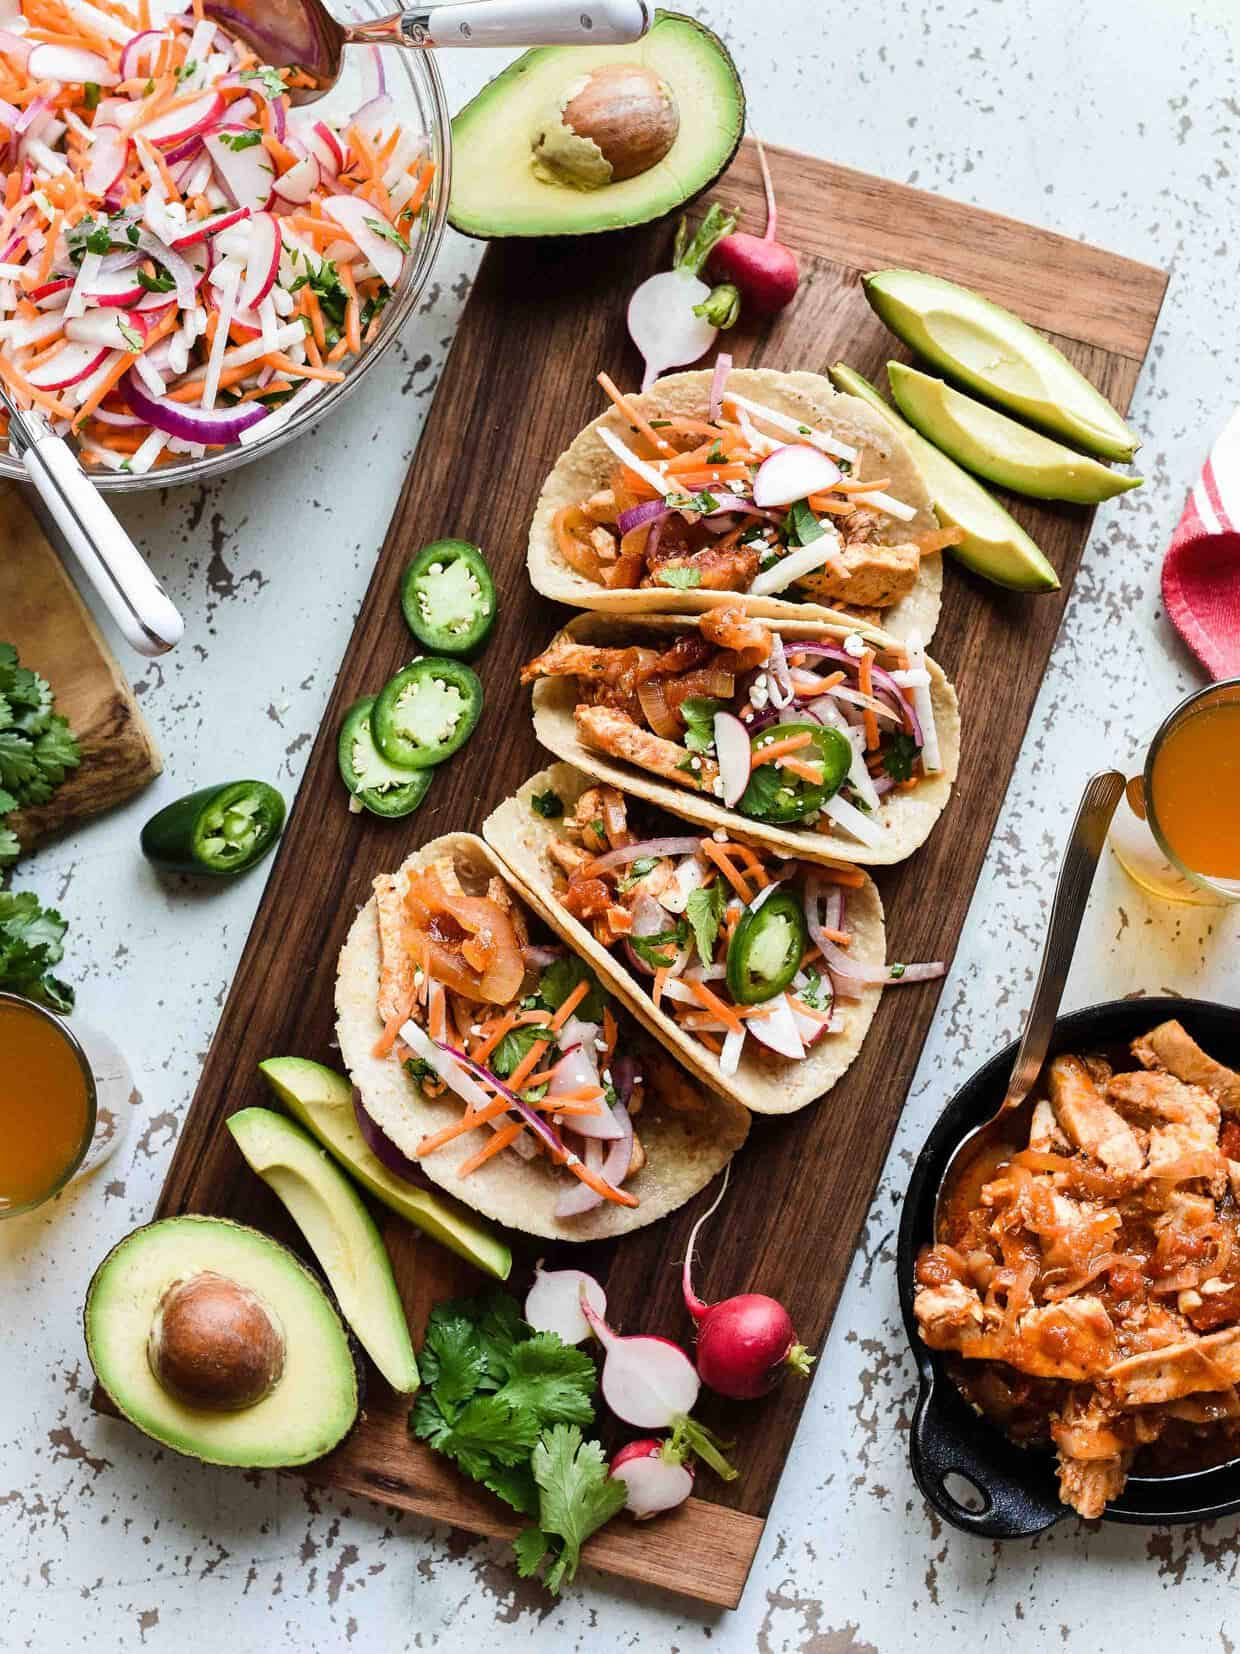 Chipotle Chicken Tacos with Jicama Slaw